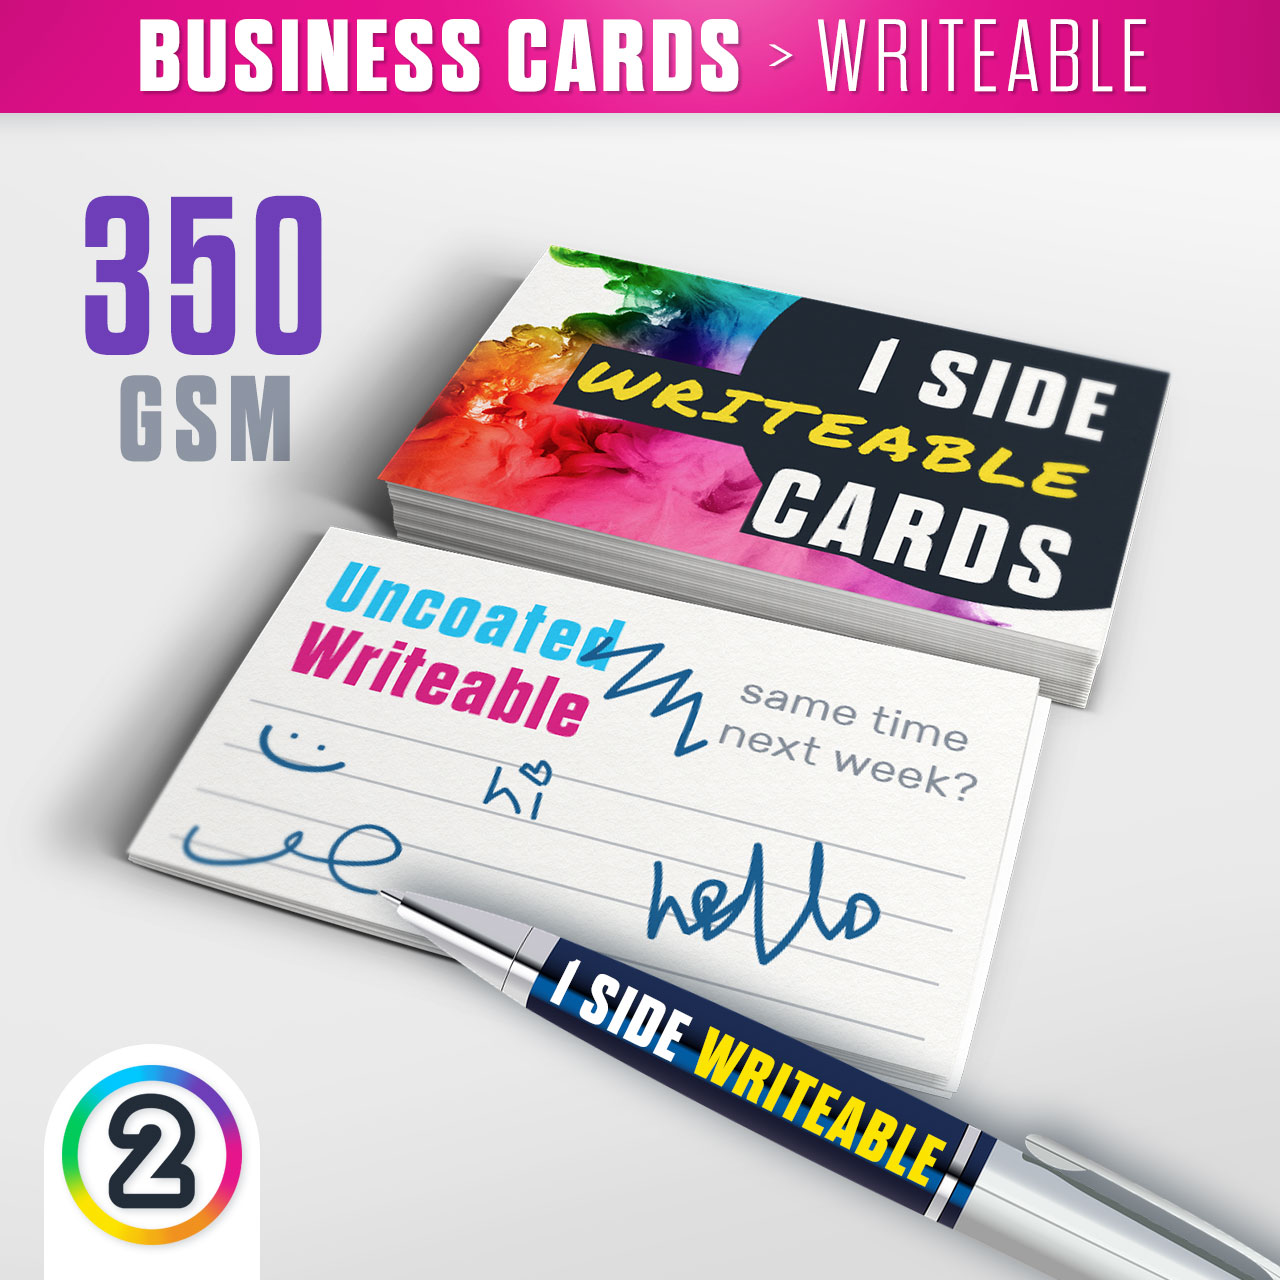 Tennis Australia Business Cards Choice Image - Card Design And ...